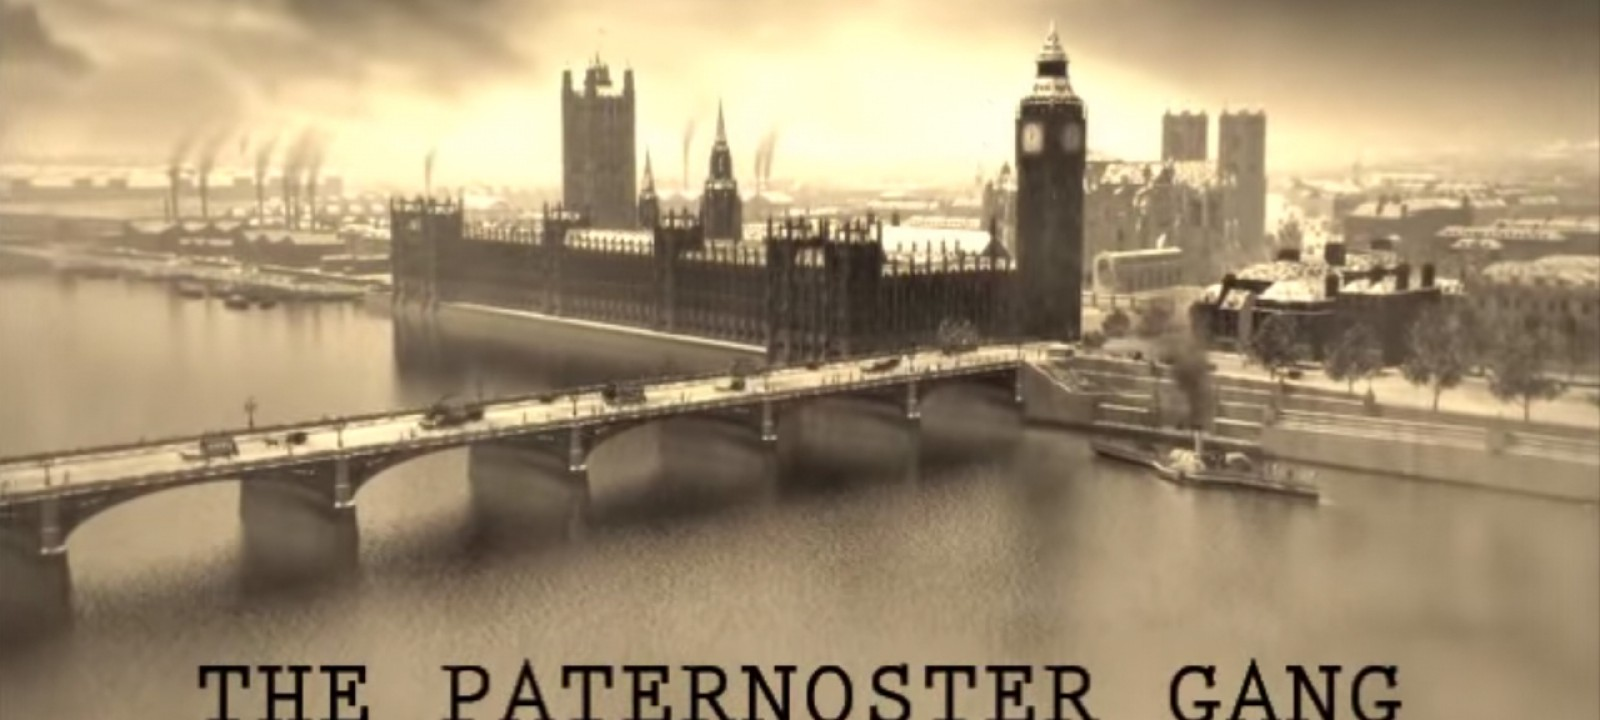 'The Paternoster Gang' (Photo: BBC/YouTube)